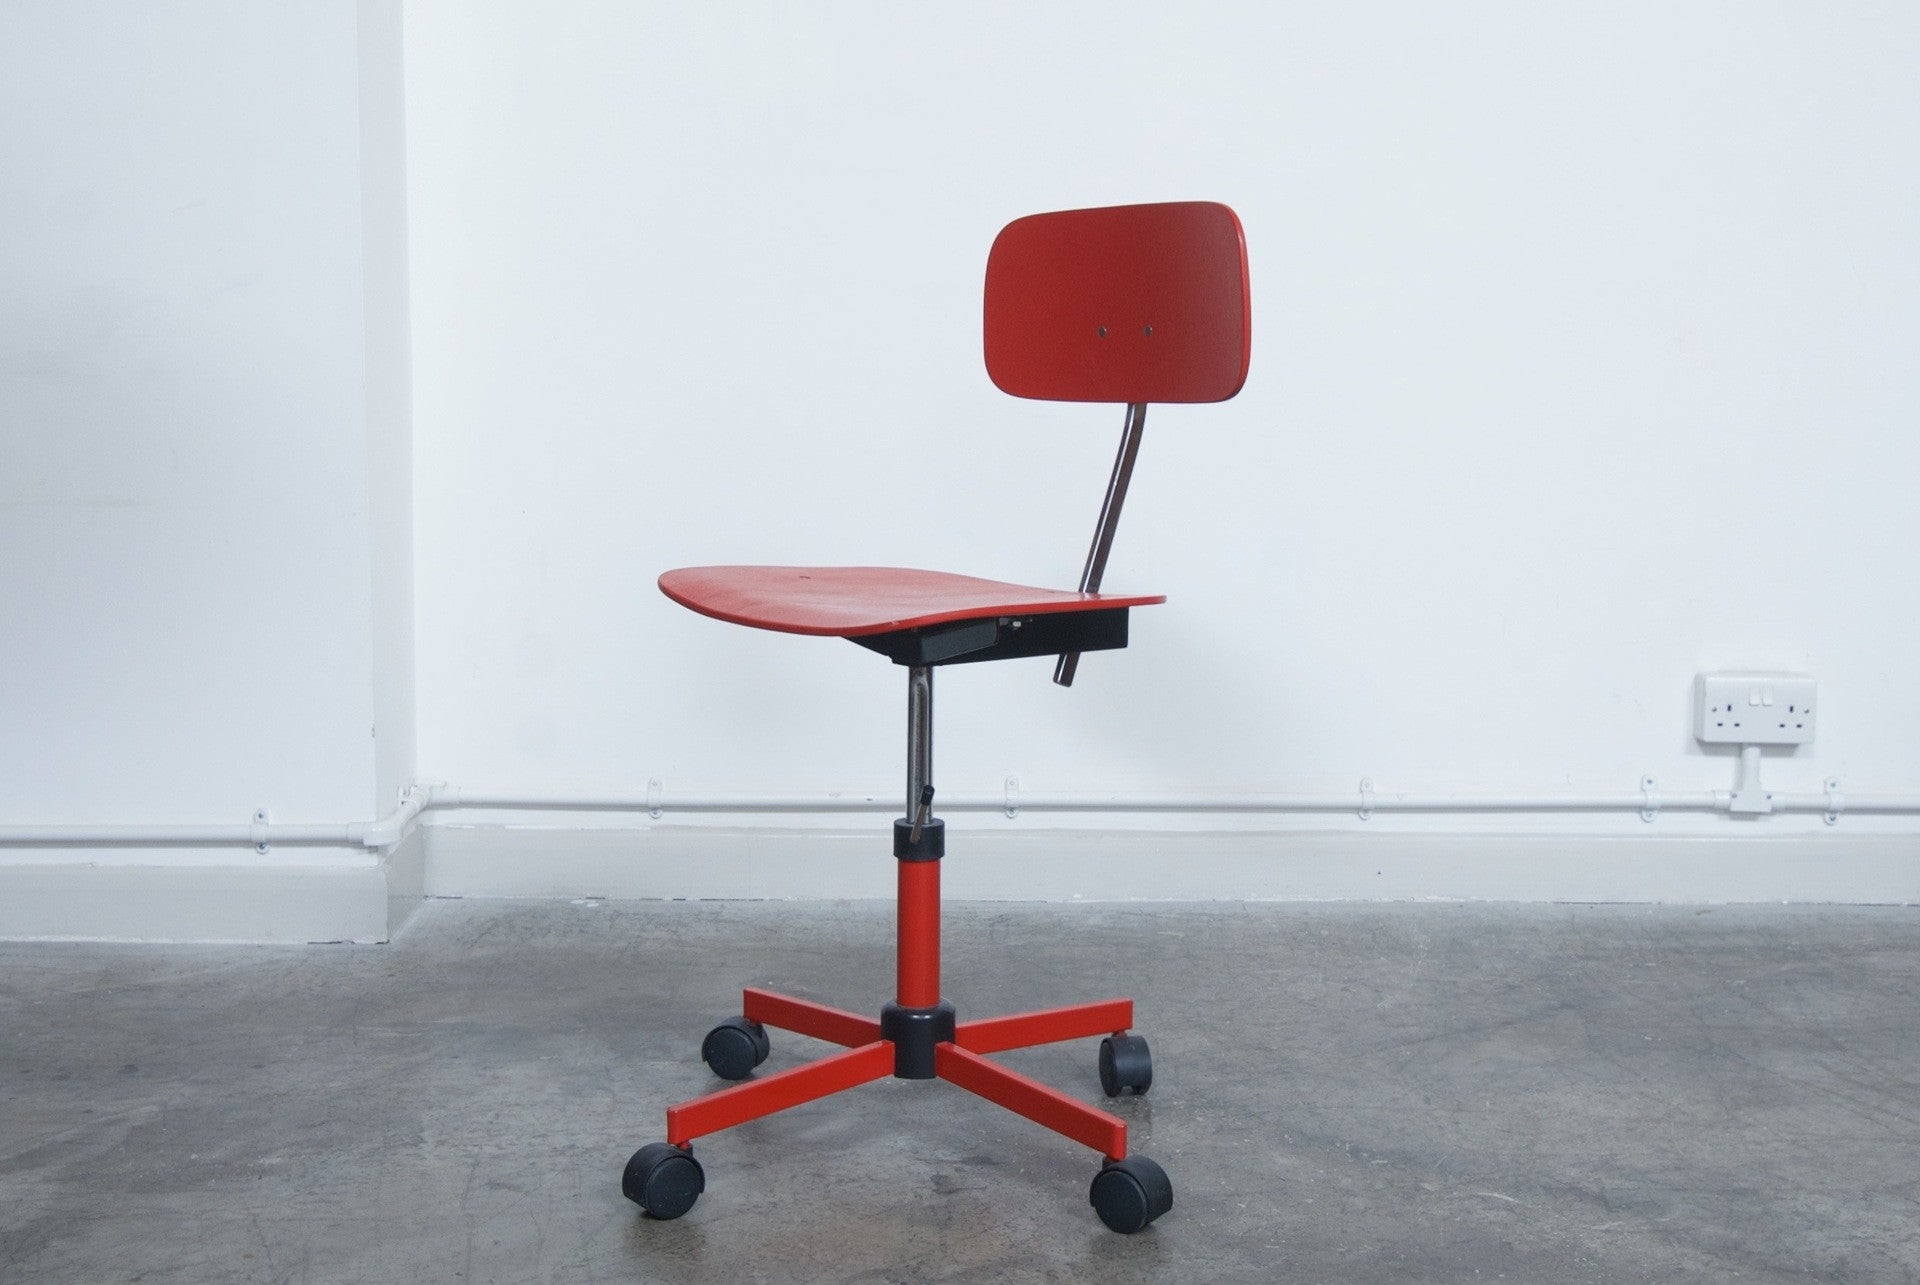 Not specified Adjustable desk chair by Rabami